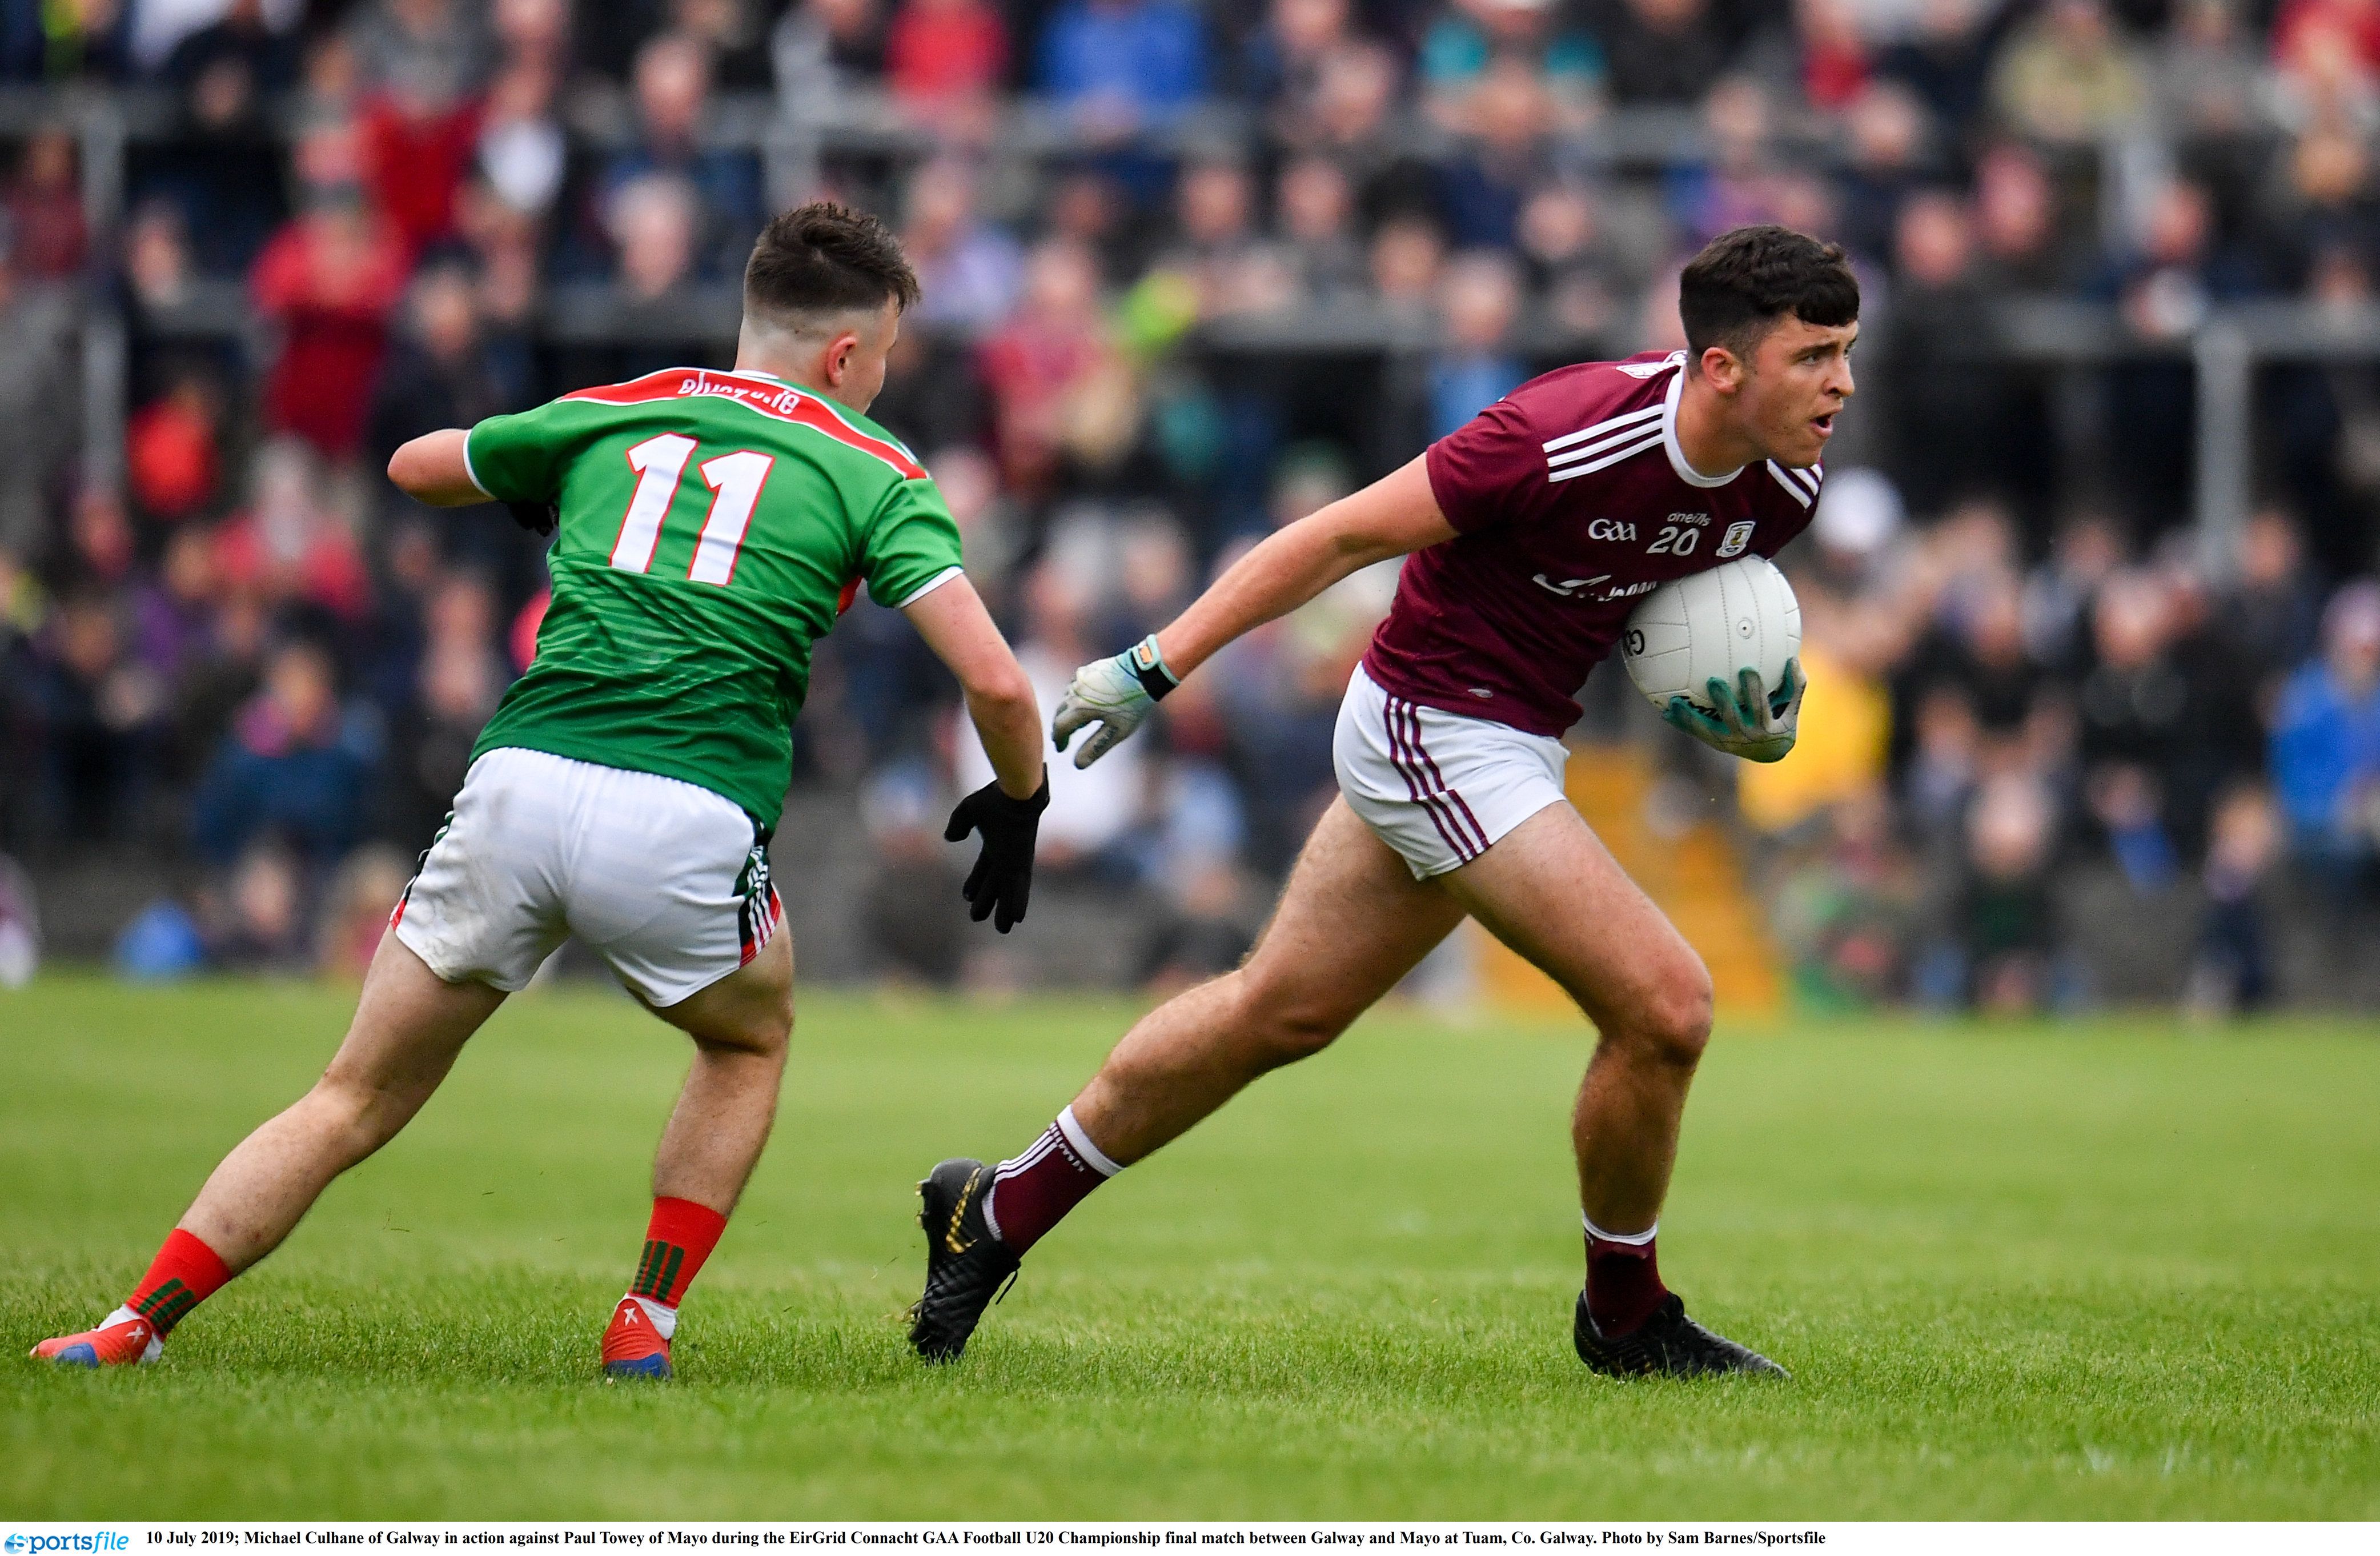 Galway are Connacht Under 20 Champions for 2019